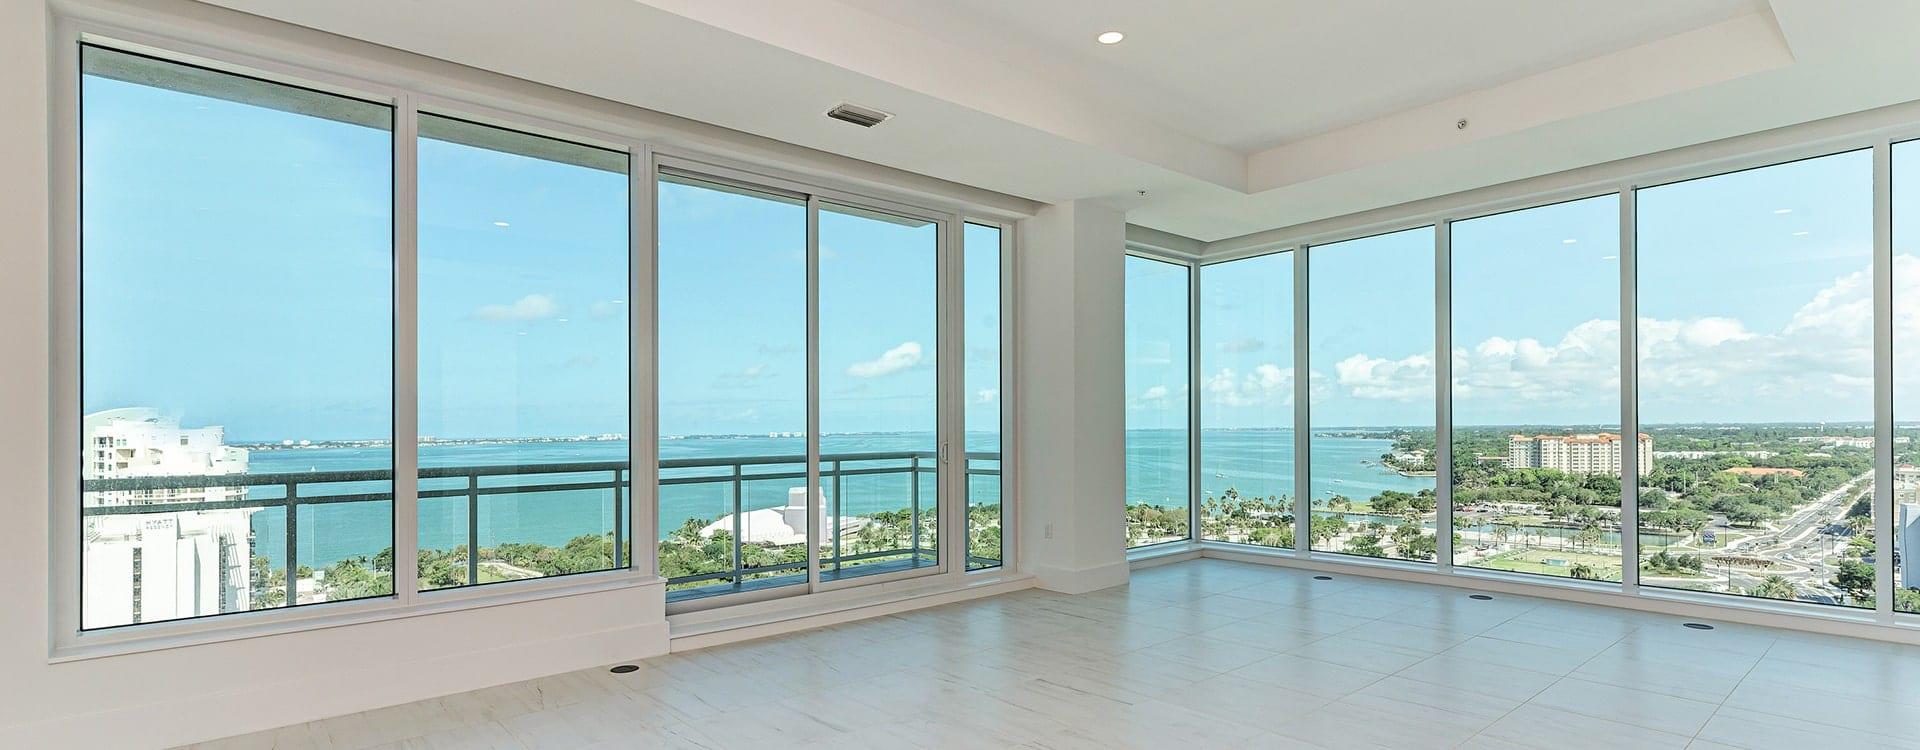 BLVD Sarasota Residence 1702 great room with views